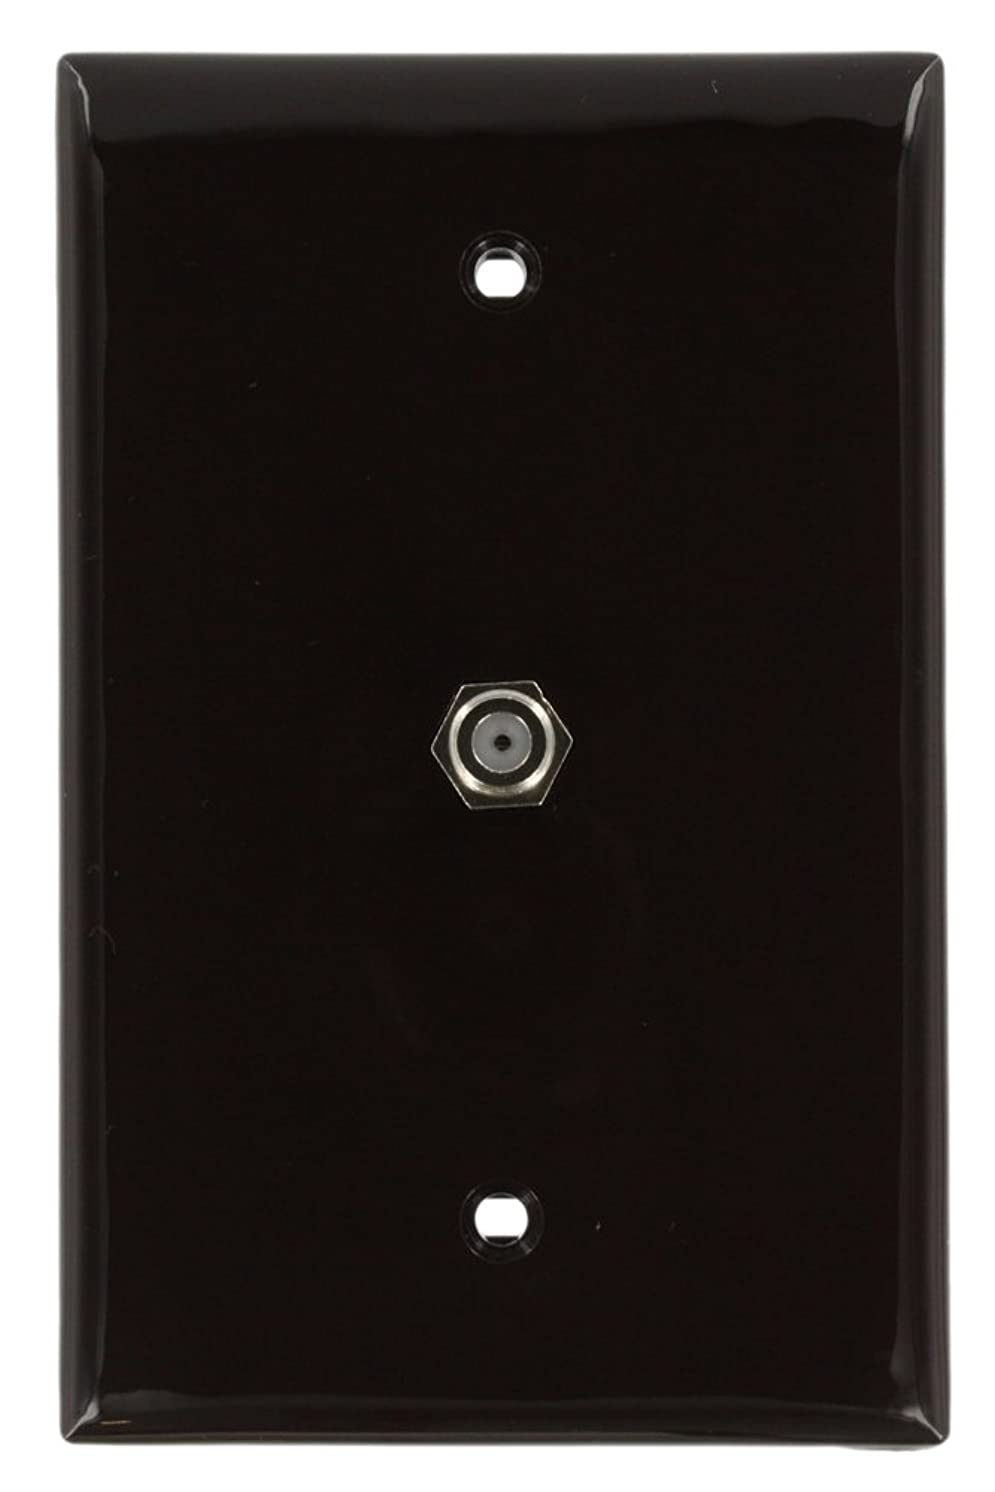 Leviton 40539-MB Midsize Video Wall Jack, F Connector, Brown